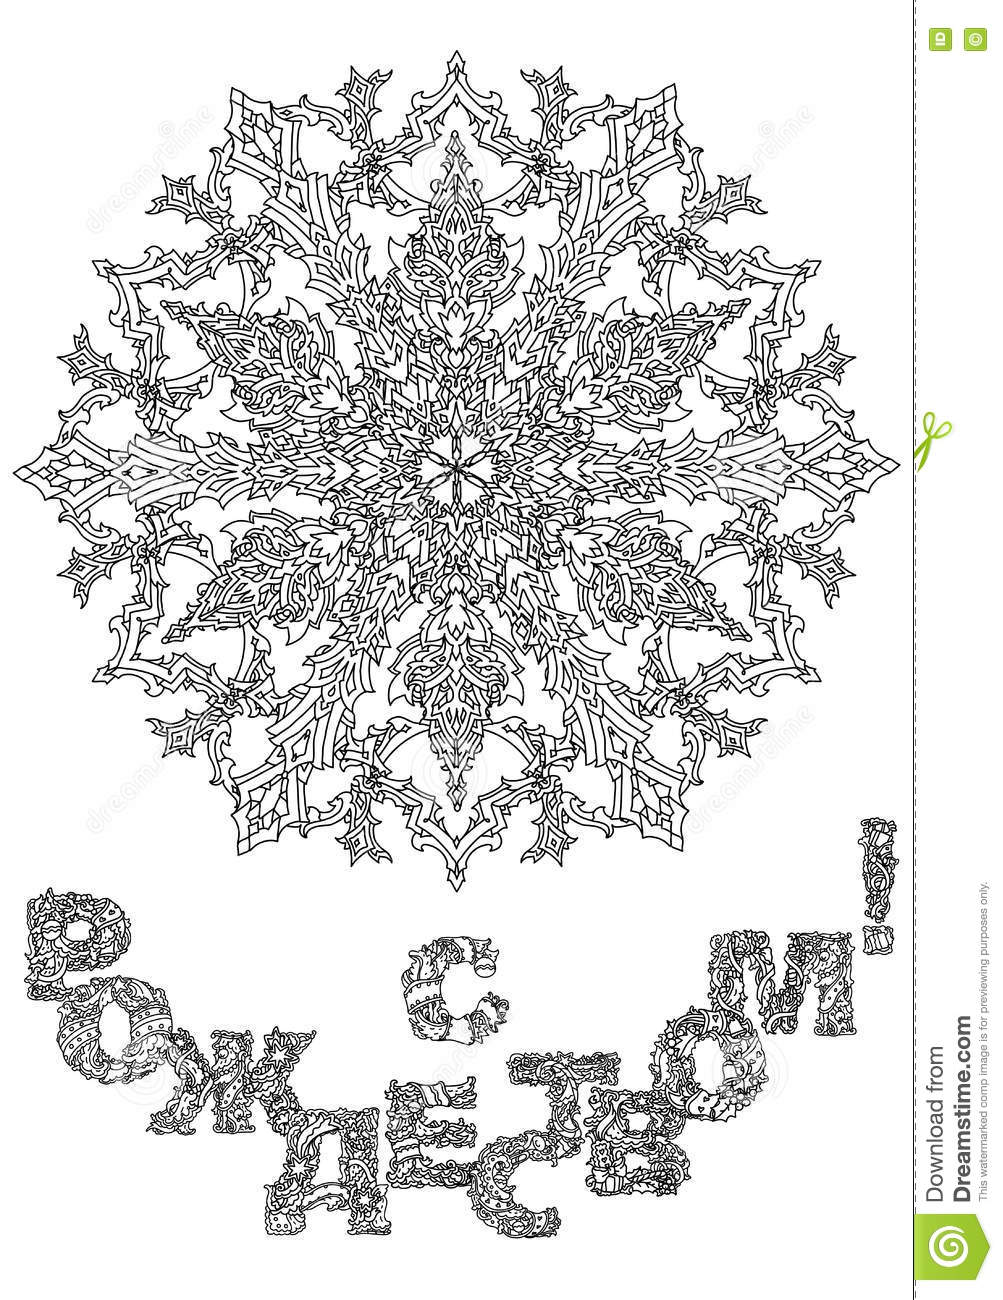 russian orthodox xmas cyrillic russian text english translation merry christmas xmas wreath and snowflakes on white background in zen adult coloring